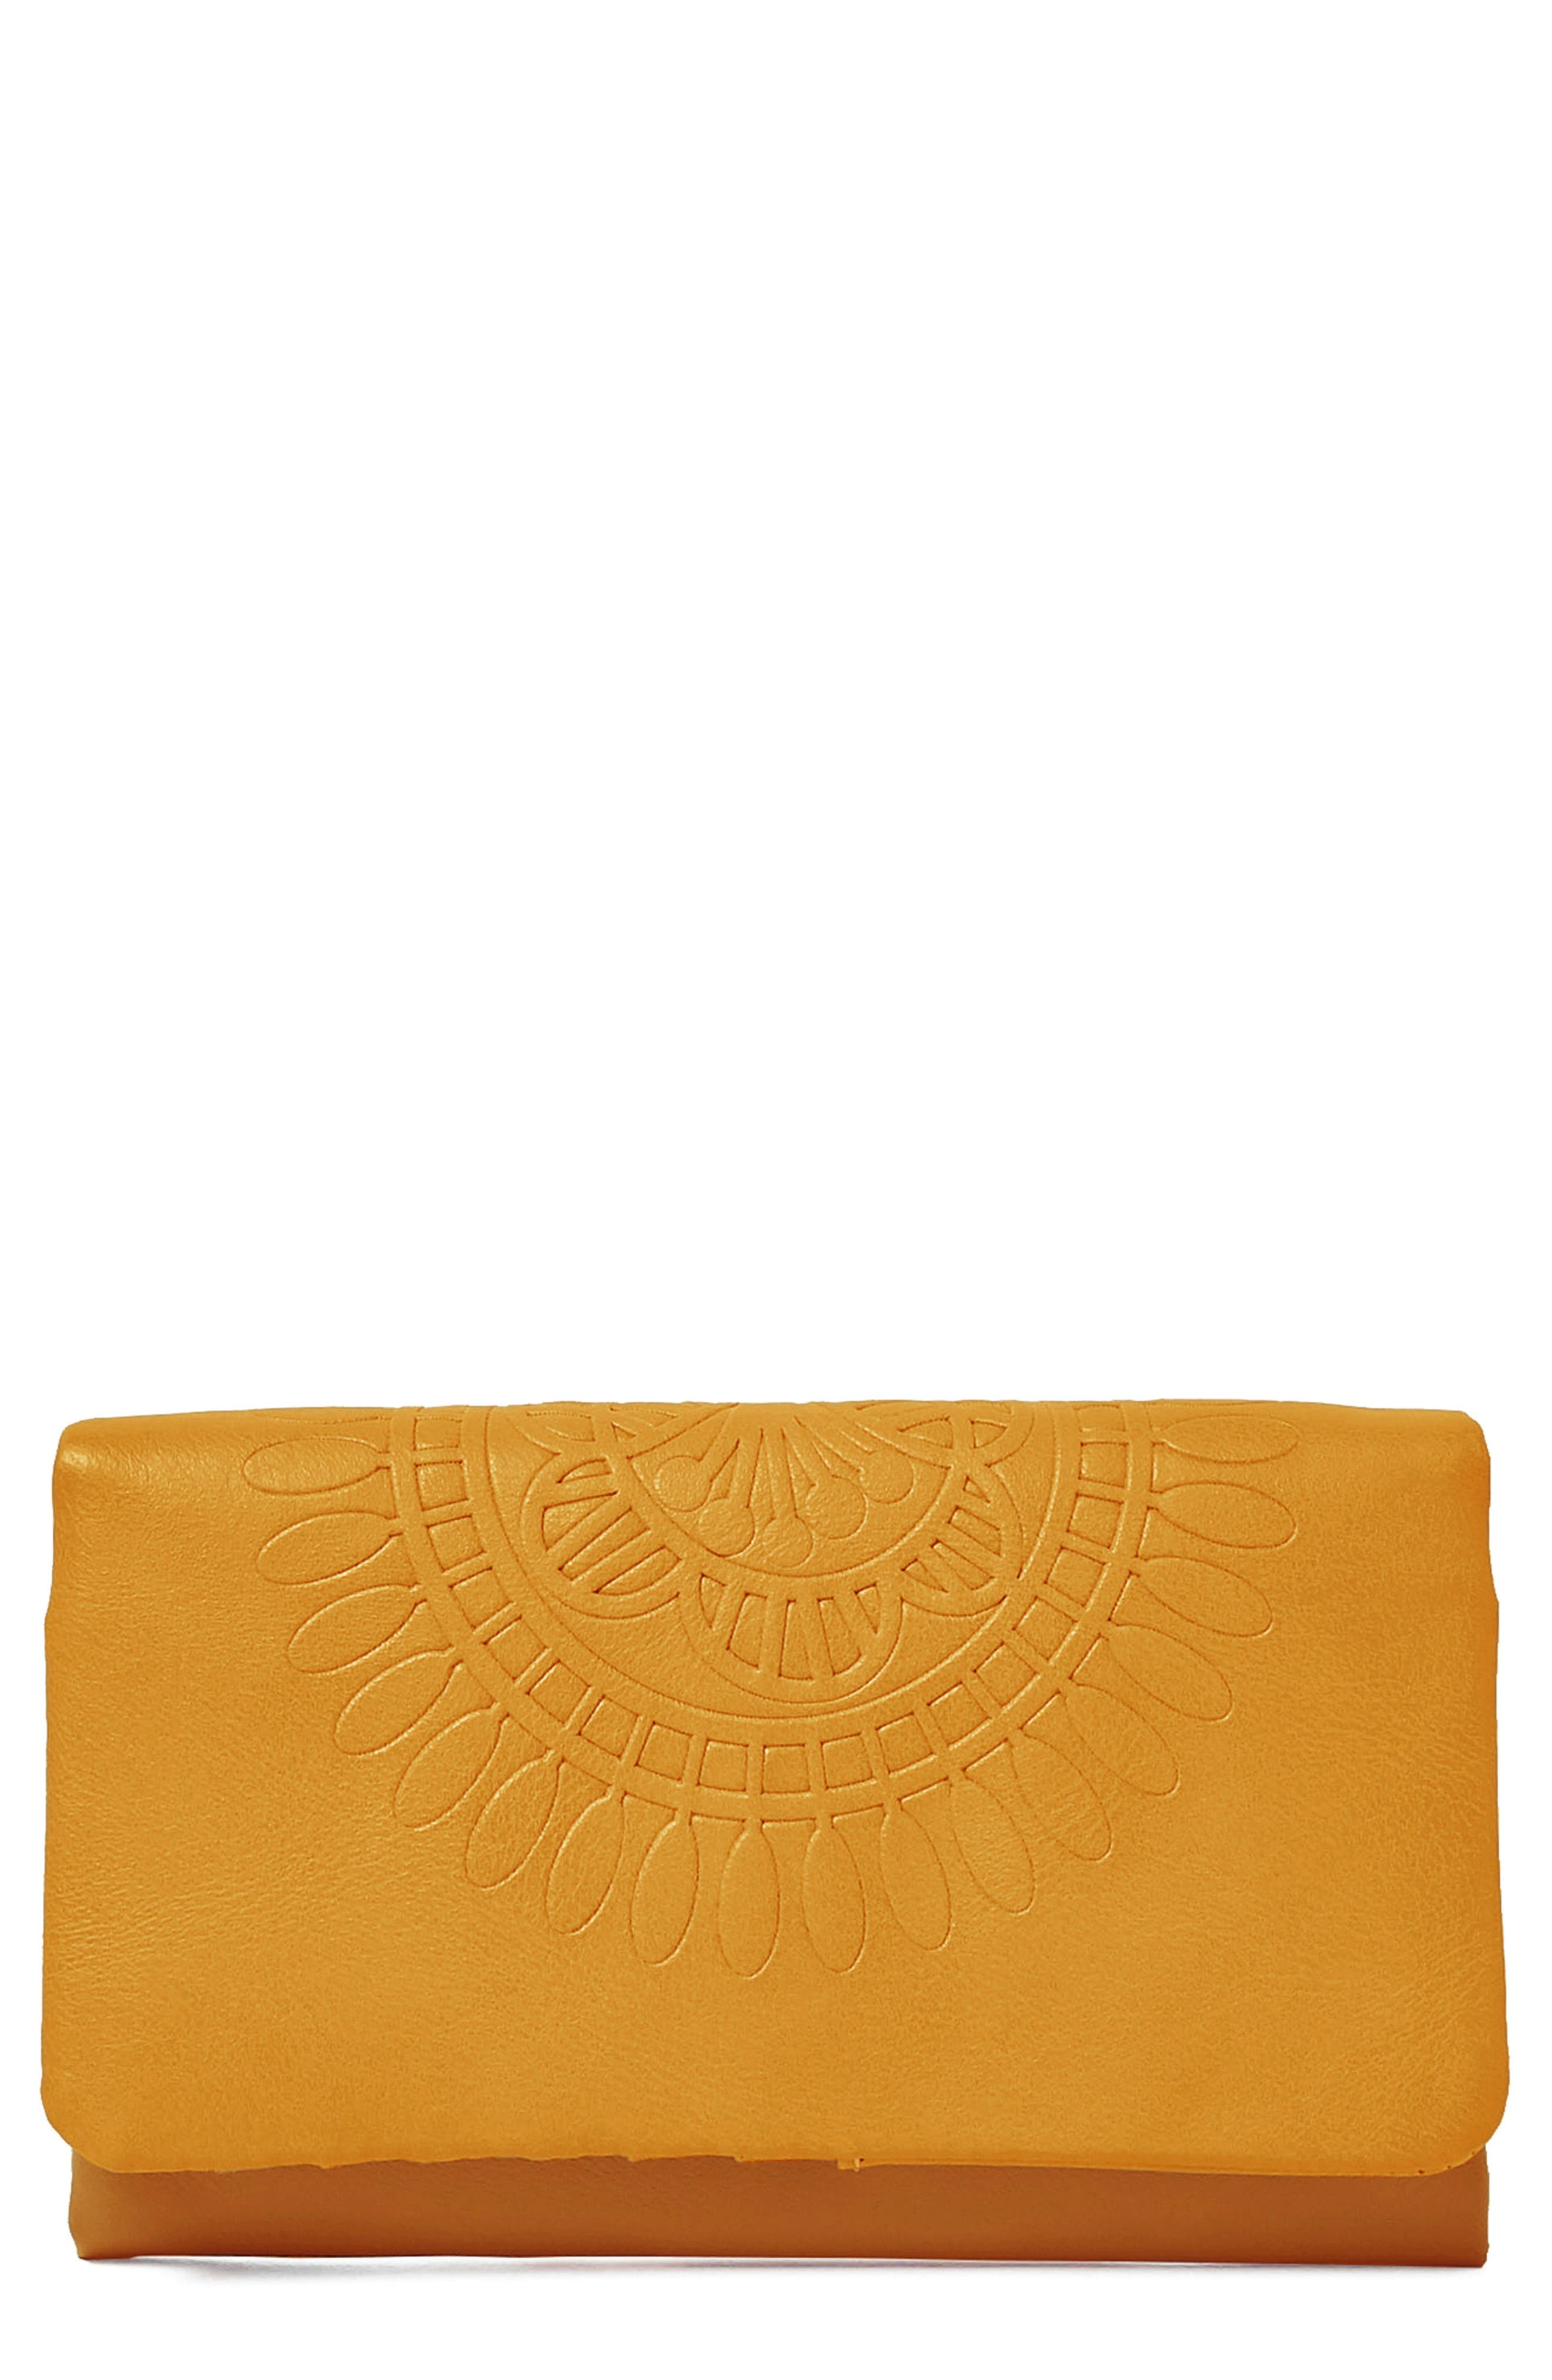 Flower Gypsy Vegan Leather Wallet,                             Main thumbnail 1, color,                             Mustard